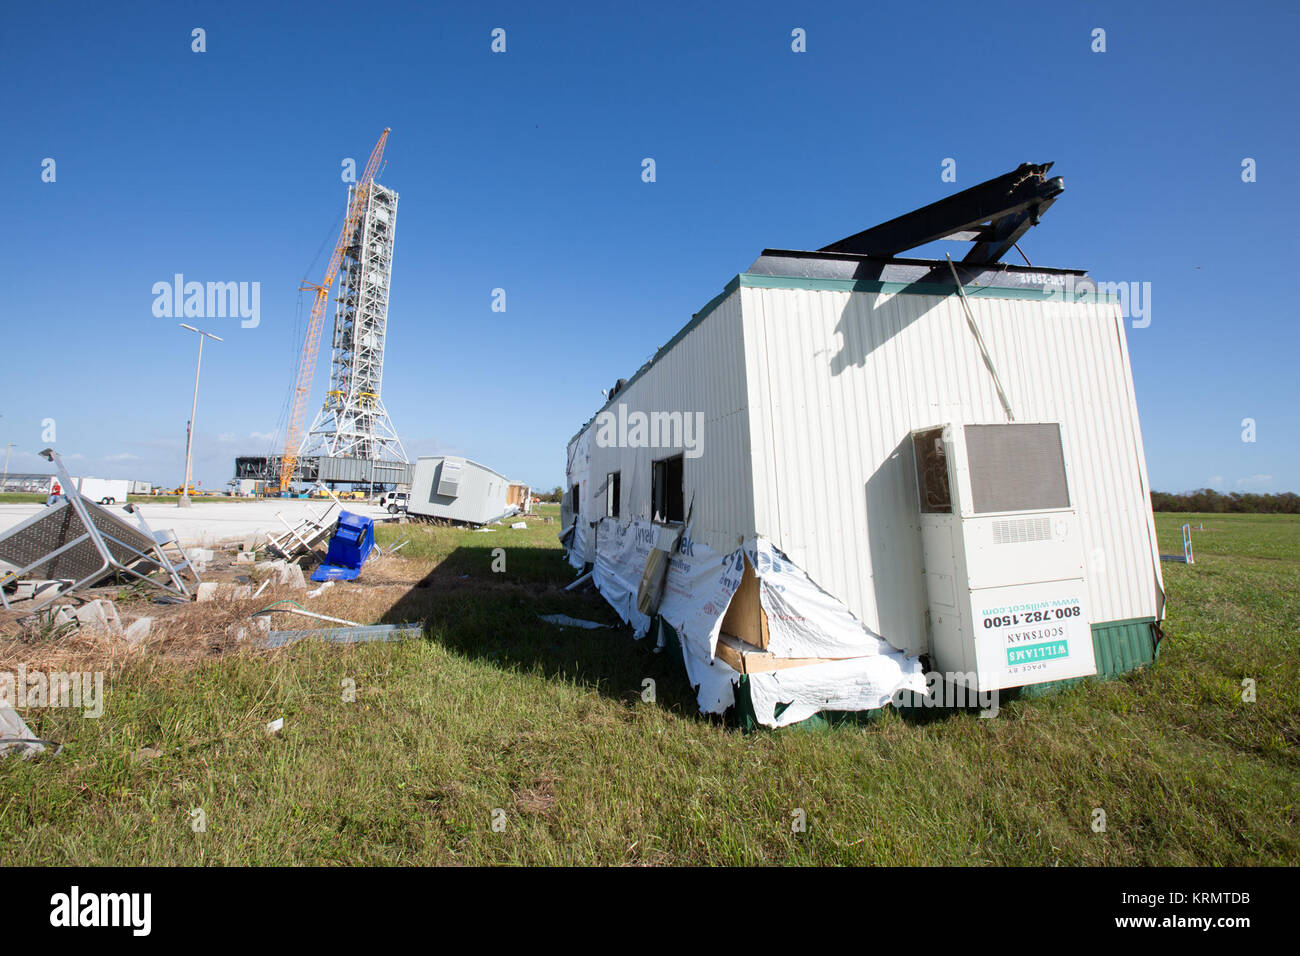 A damaged construction trailer and several pieces of associated debris, aftermath of Hurricane Matthew, are seen - Stock Image